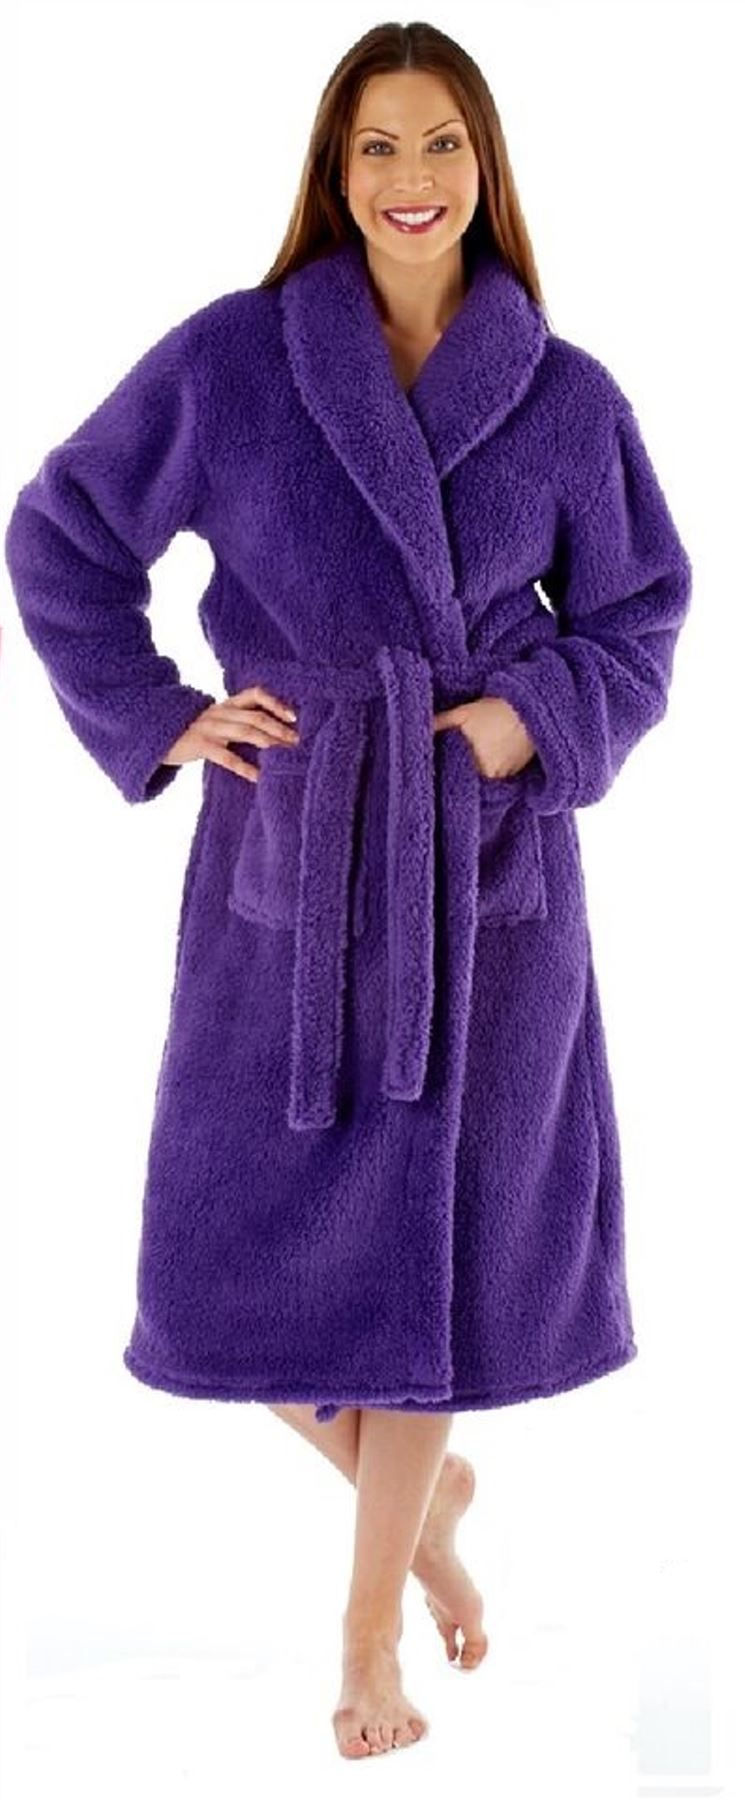 Terry Cotton Personalised Bathrobes Buy Men's, Ladies Bathrobes £ Hooded Bath robes £10, Personalised robes. Welcome to one of UK's leading wholesale bathrobe company supplying hotels, spa or for personal use.